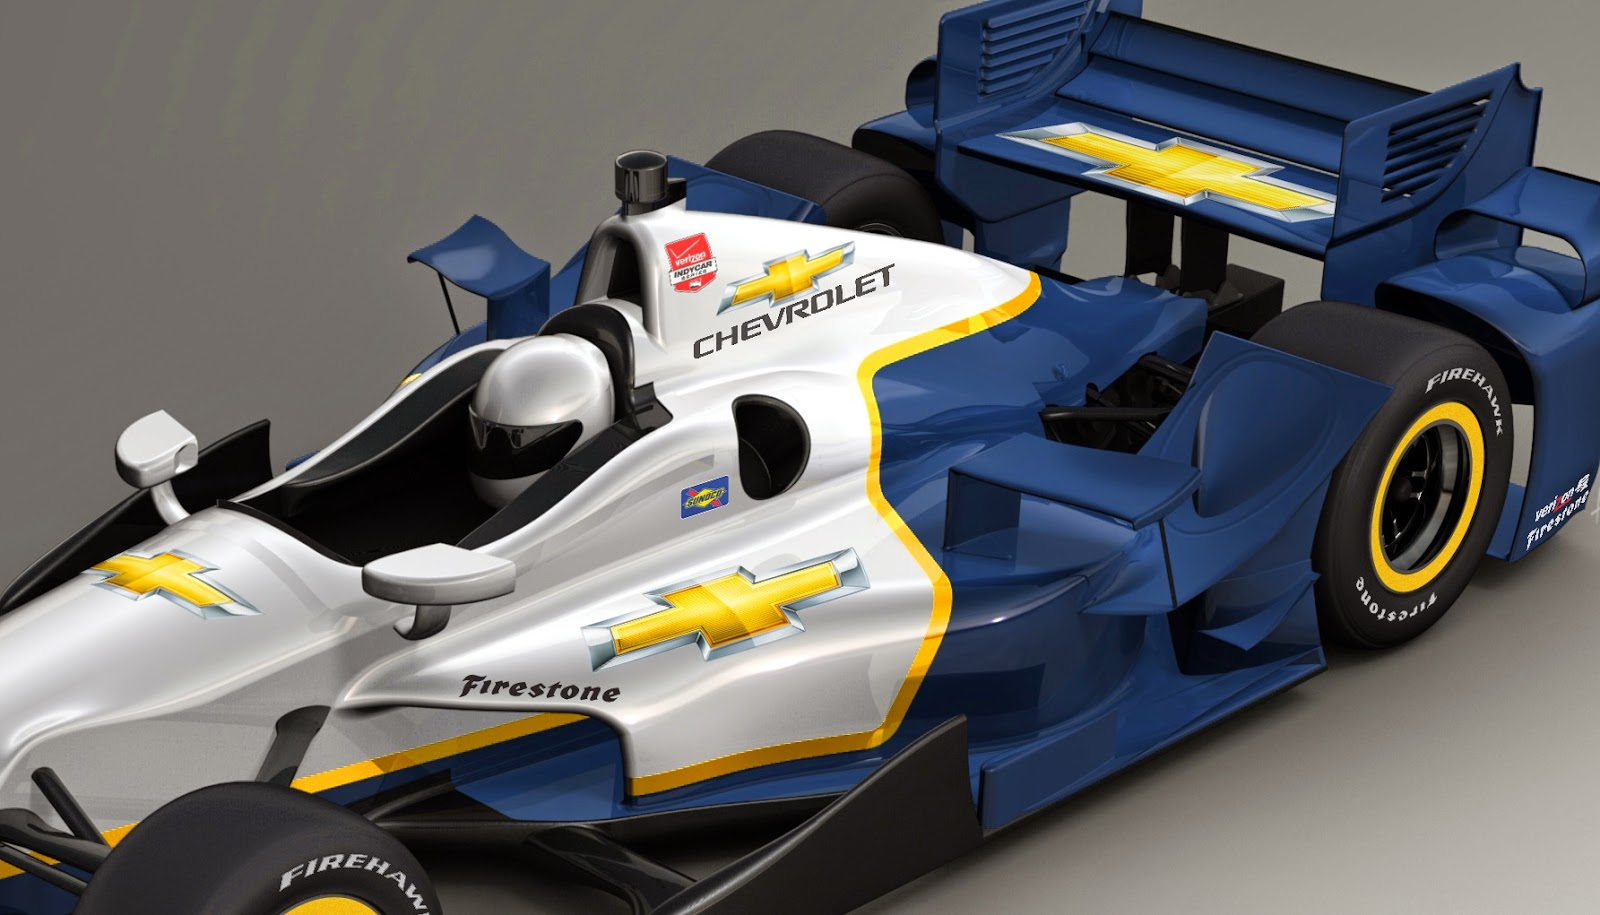 Chevy's aero kit rendering with the upper flick.